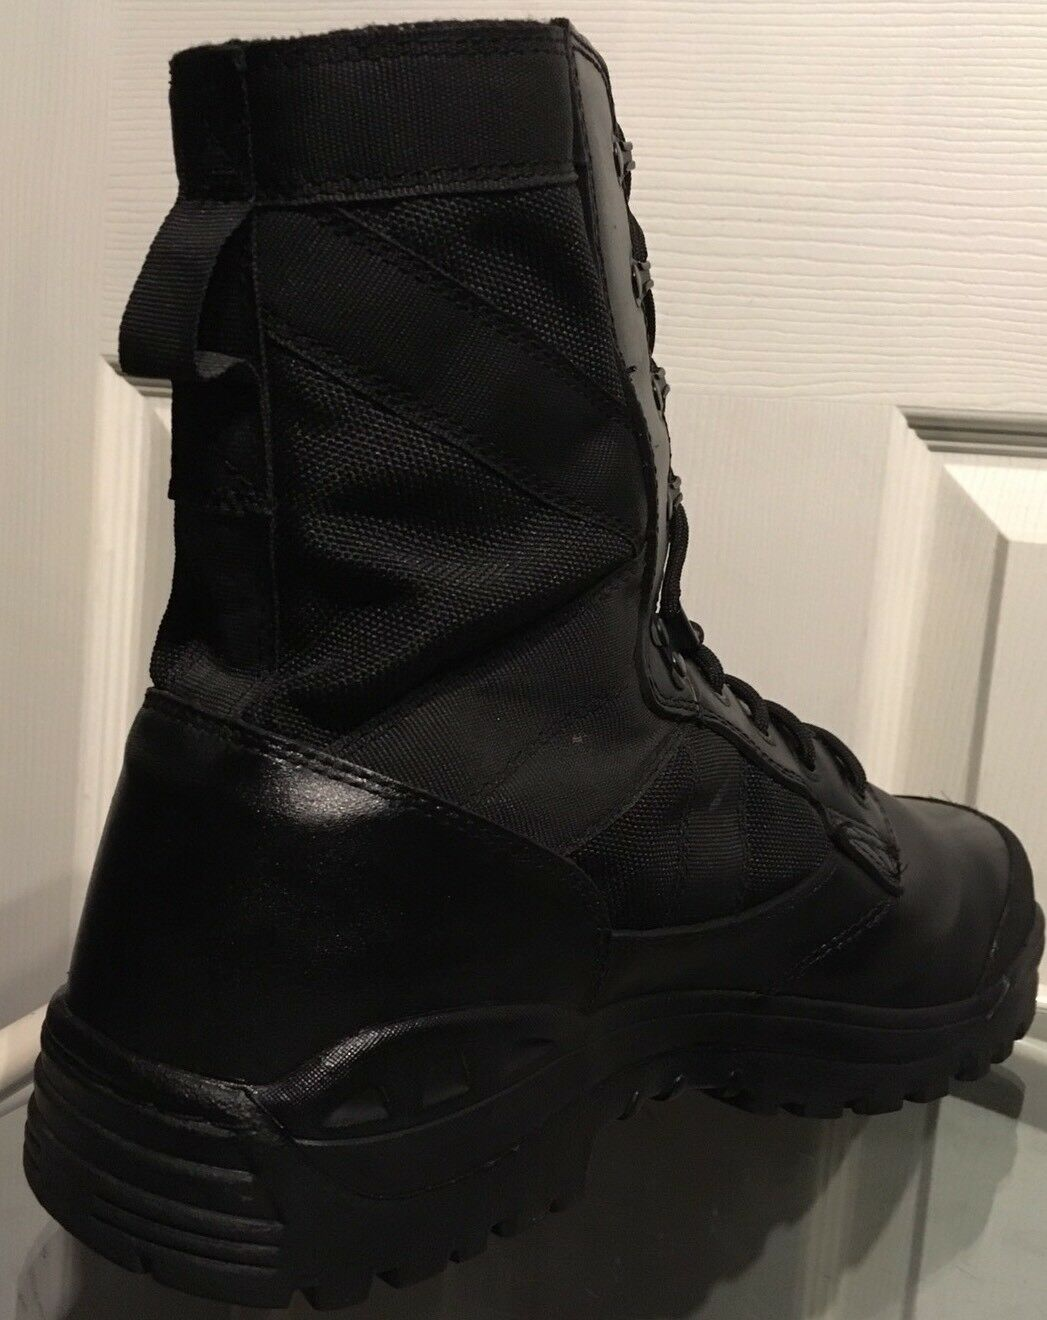 Magnum Scorpion Genuine Army Issue Steel Steel Steel Toe Cap Safety Work Boots 12 UK  MGS312 0f45b9